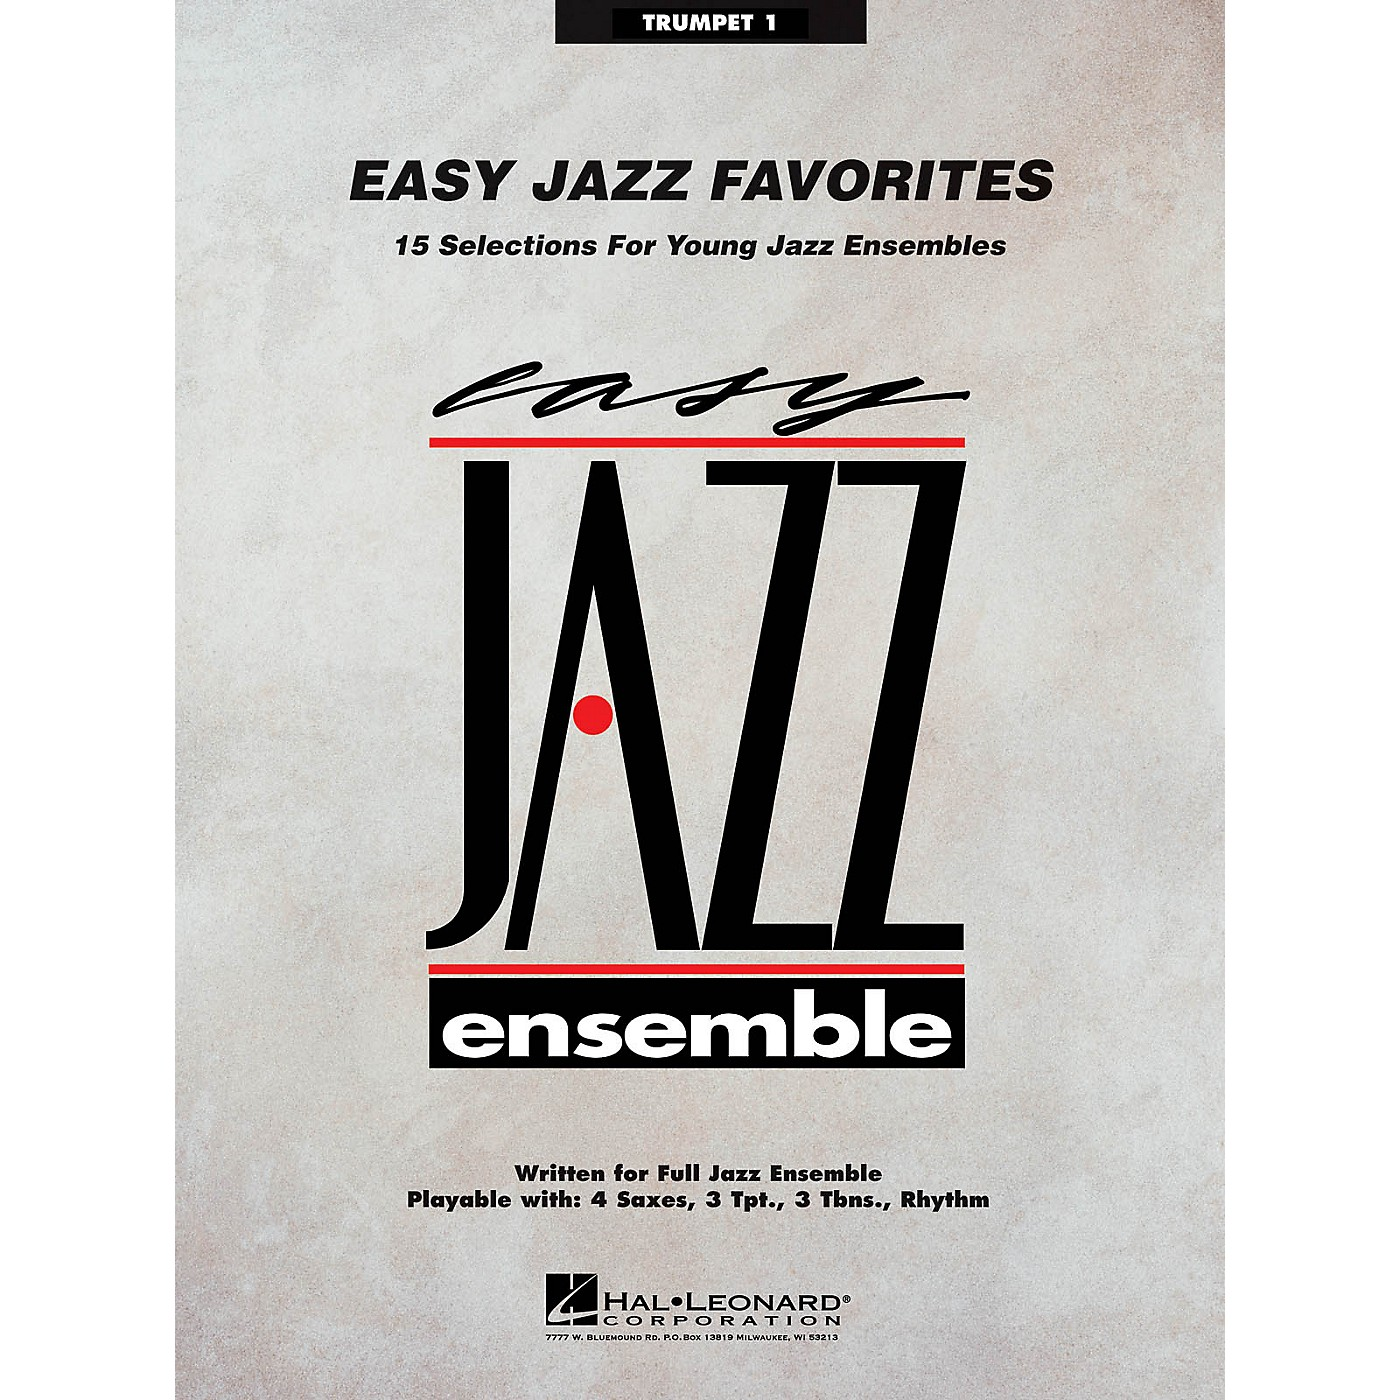 Hal Leonard Easy Jazz Favorites - Trumpet 1 Jazz Band Level 2 Composed by Various thumbnail